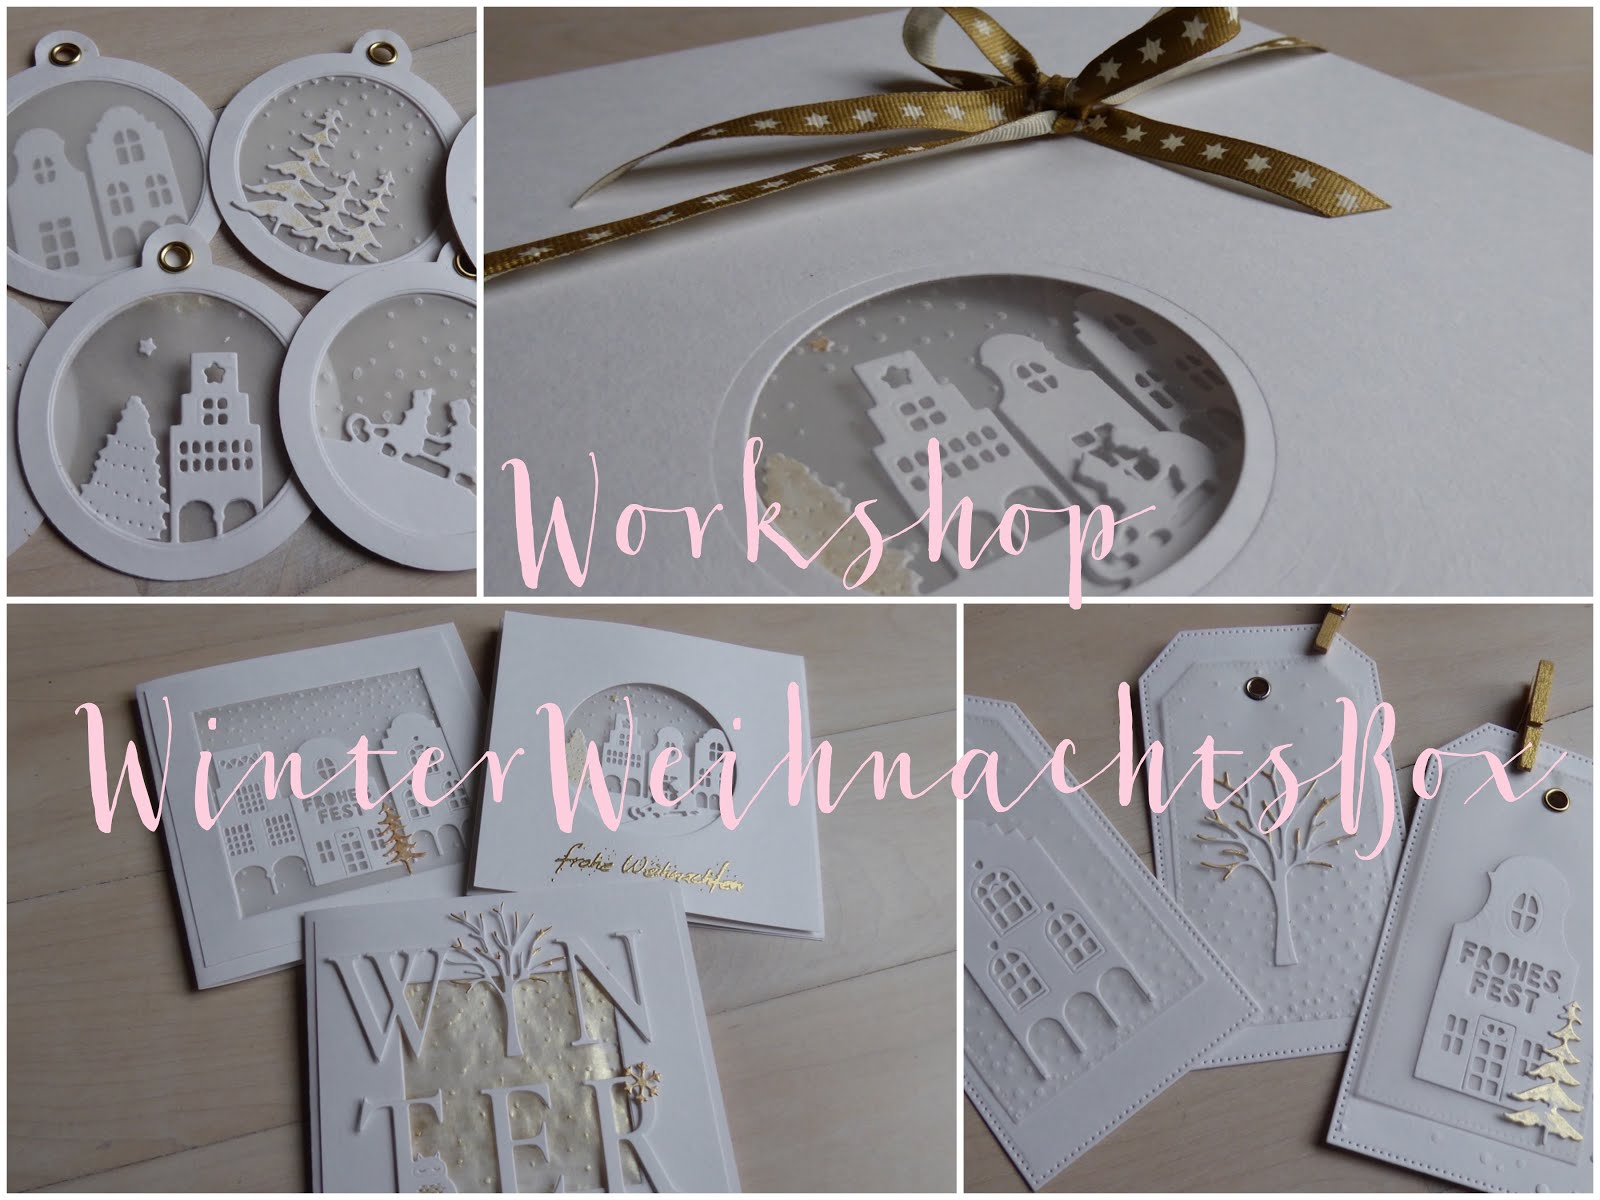 Workshop WinterWeihnachtsBox